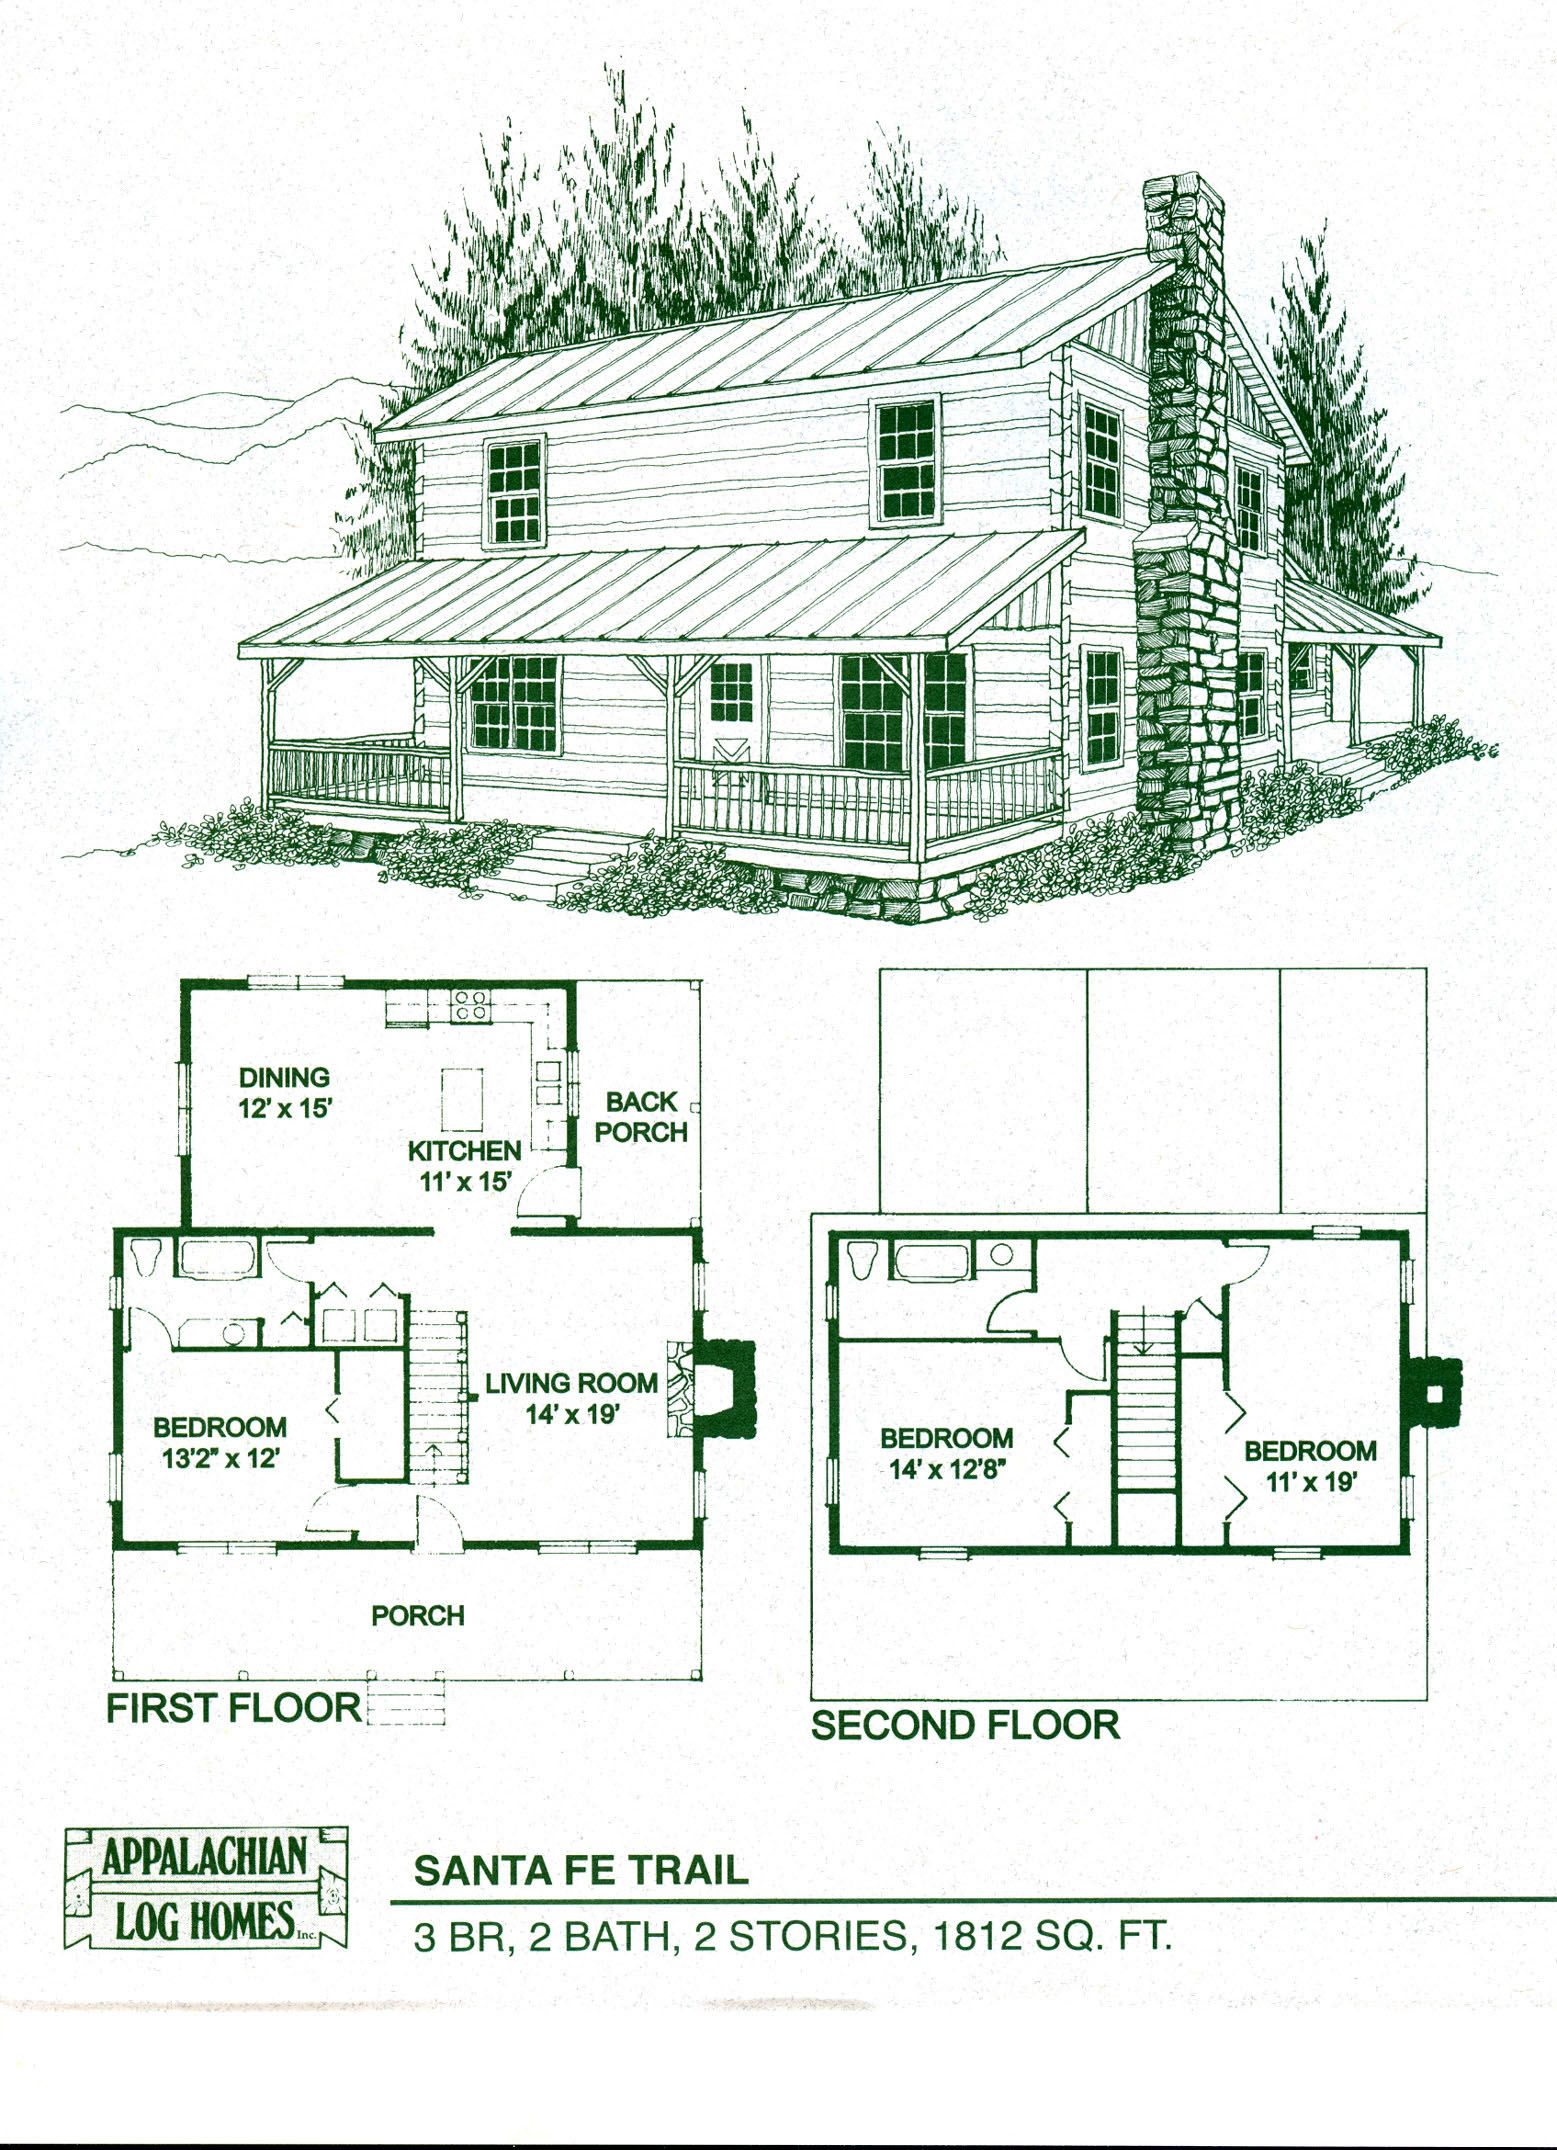 Log Home Package Kits - Log Cabin Kits - Santa Fe Trail Model ...